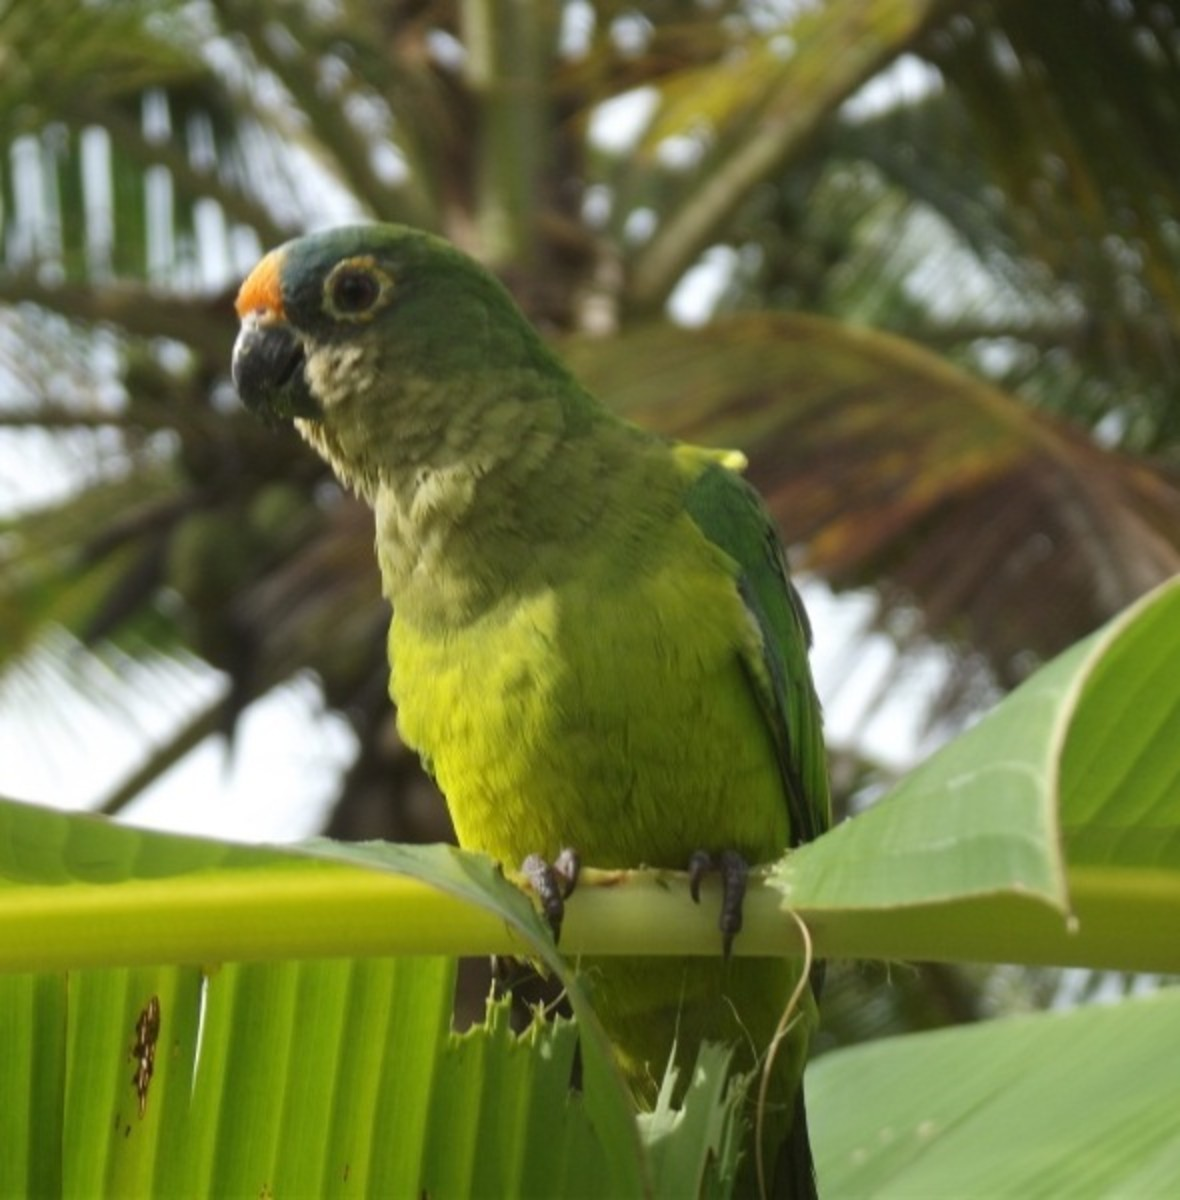 A parrot on an exercise program will be healthier and better behaved.